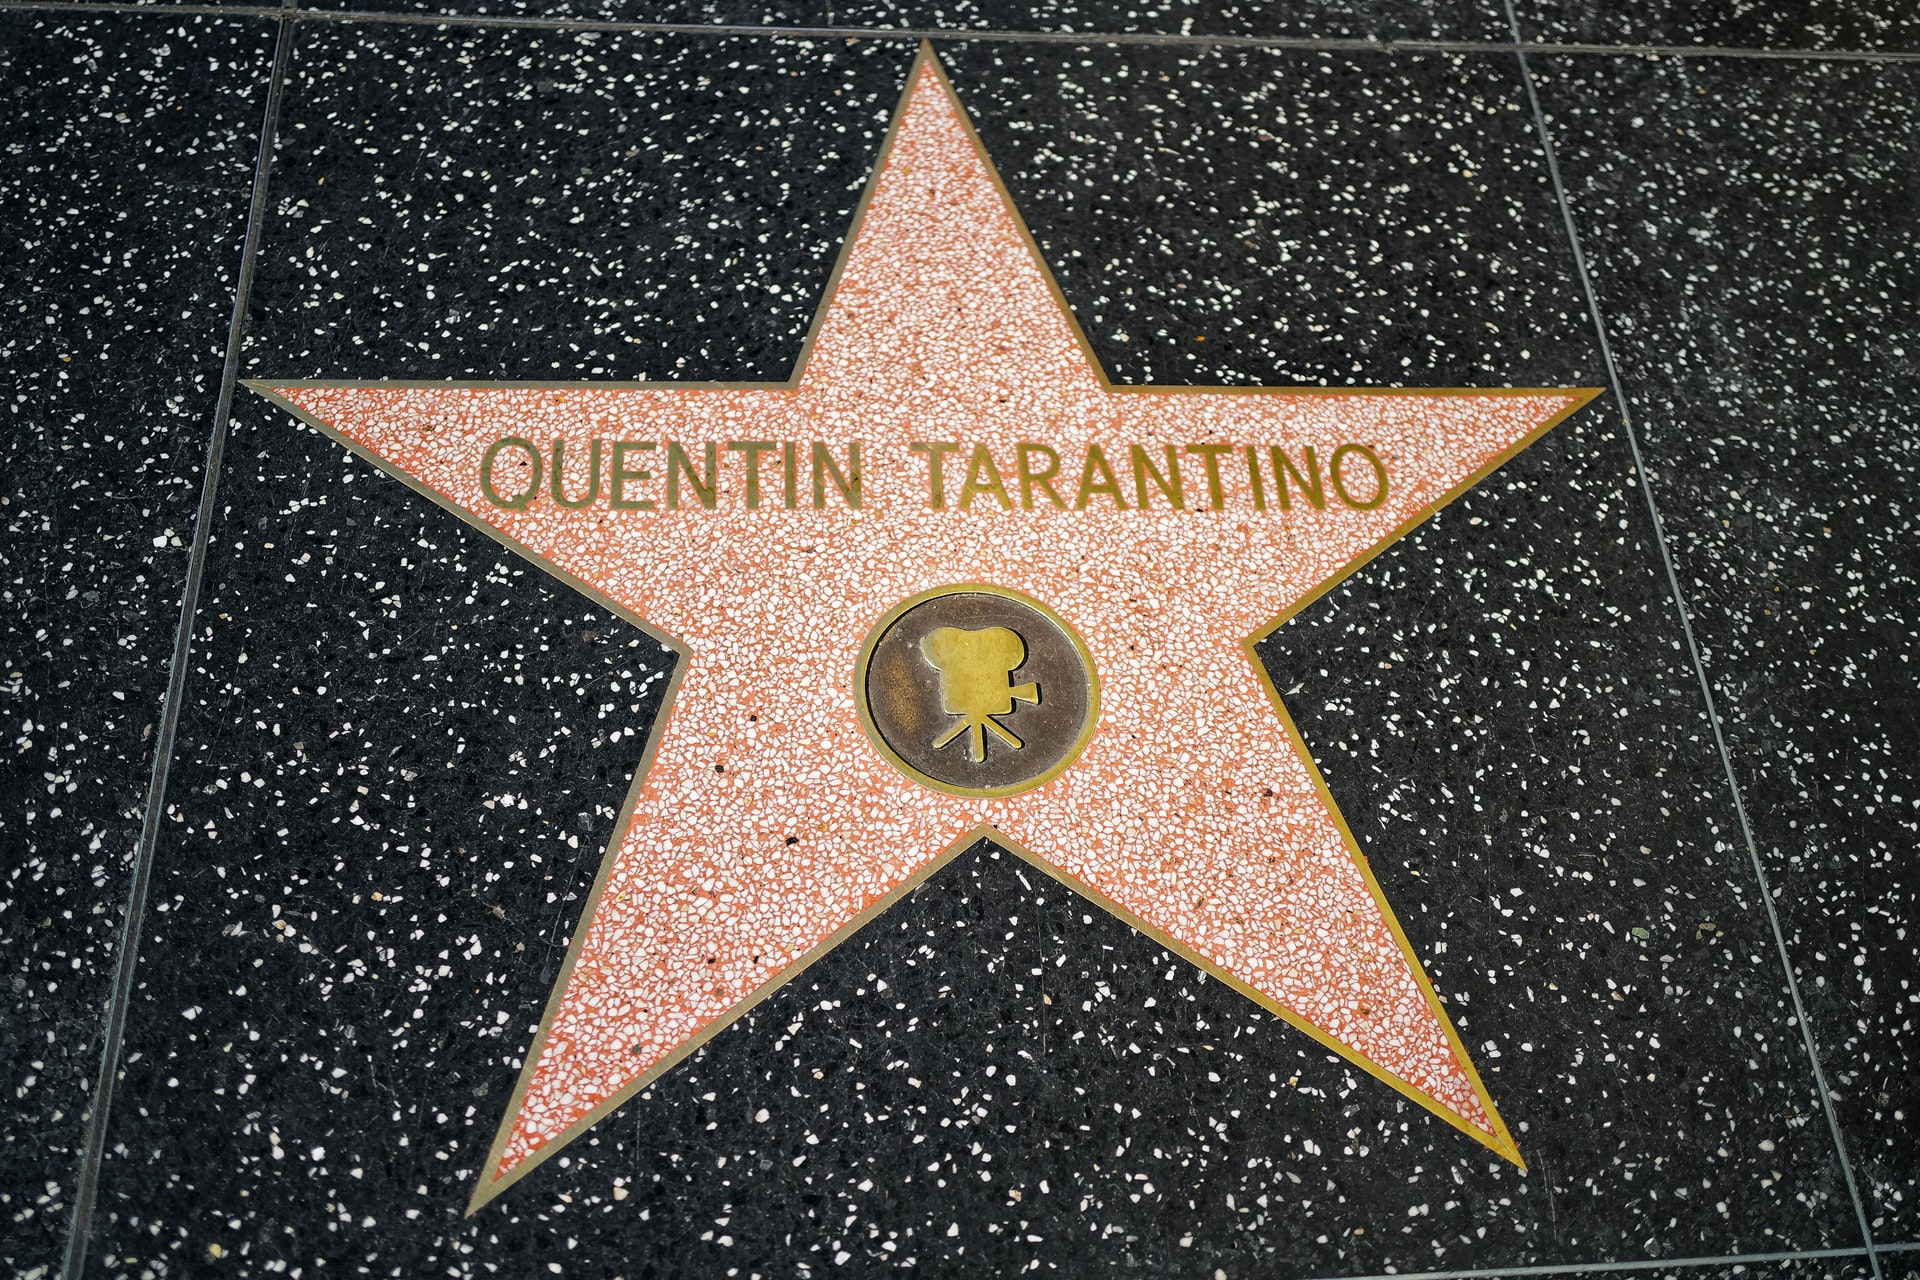 Quentin's star on the Hollywood walk of fame